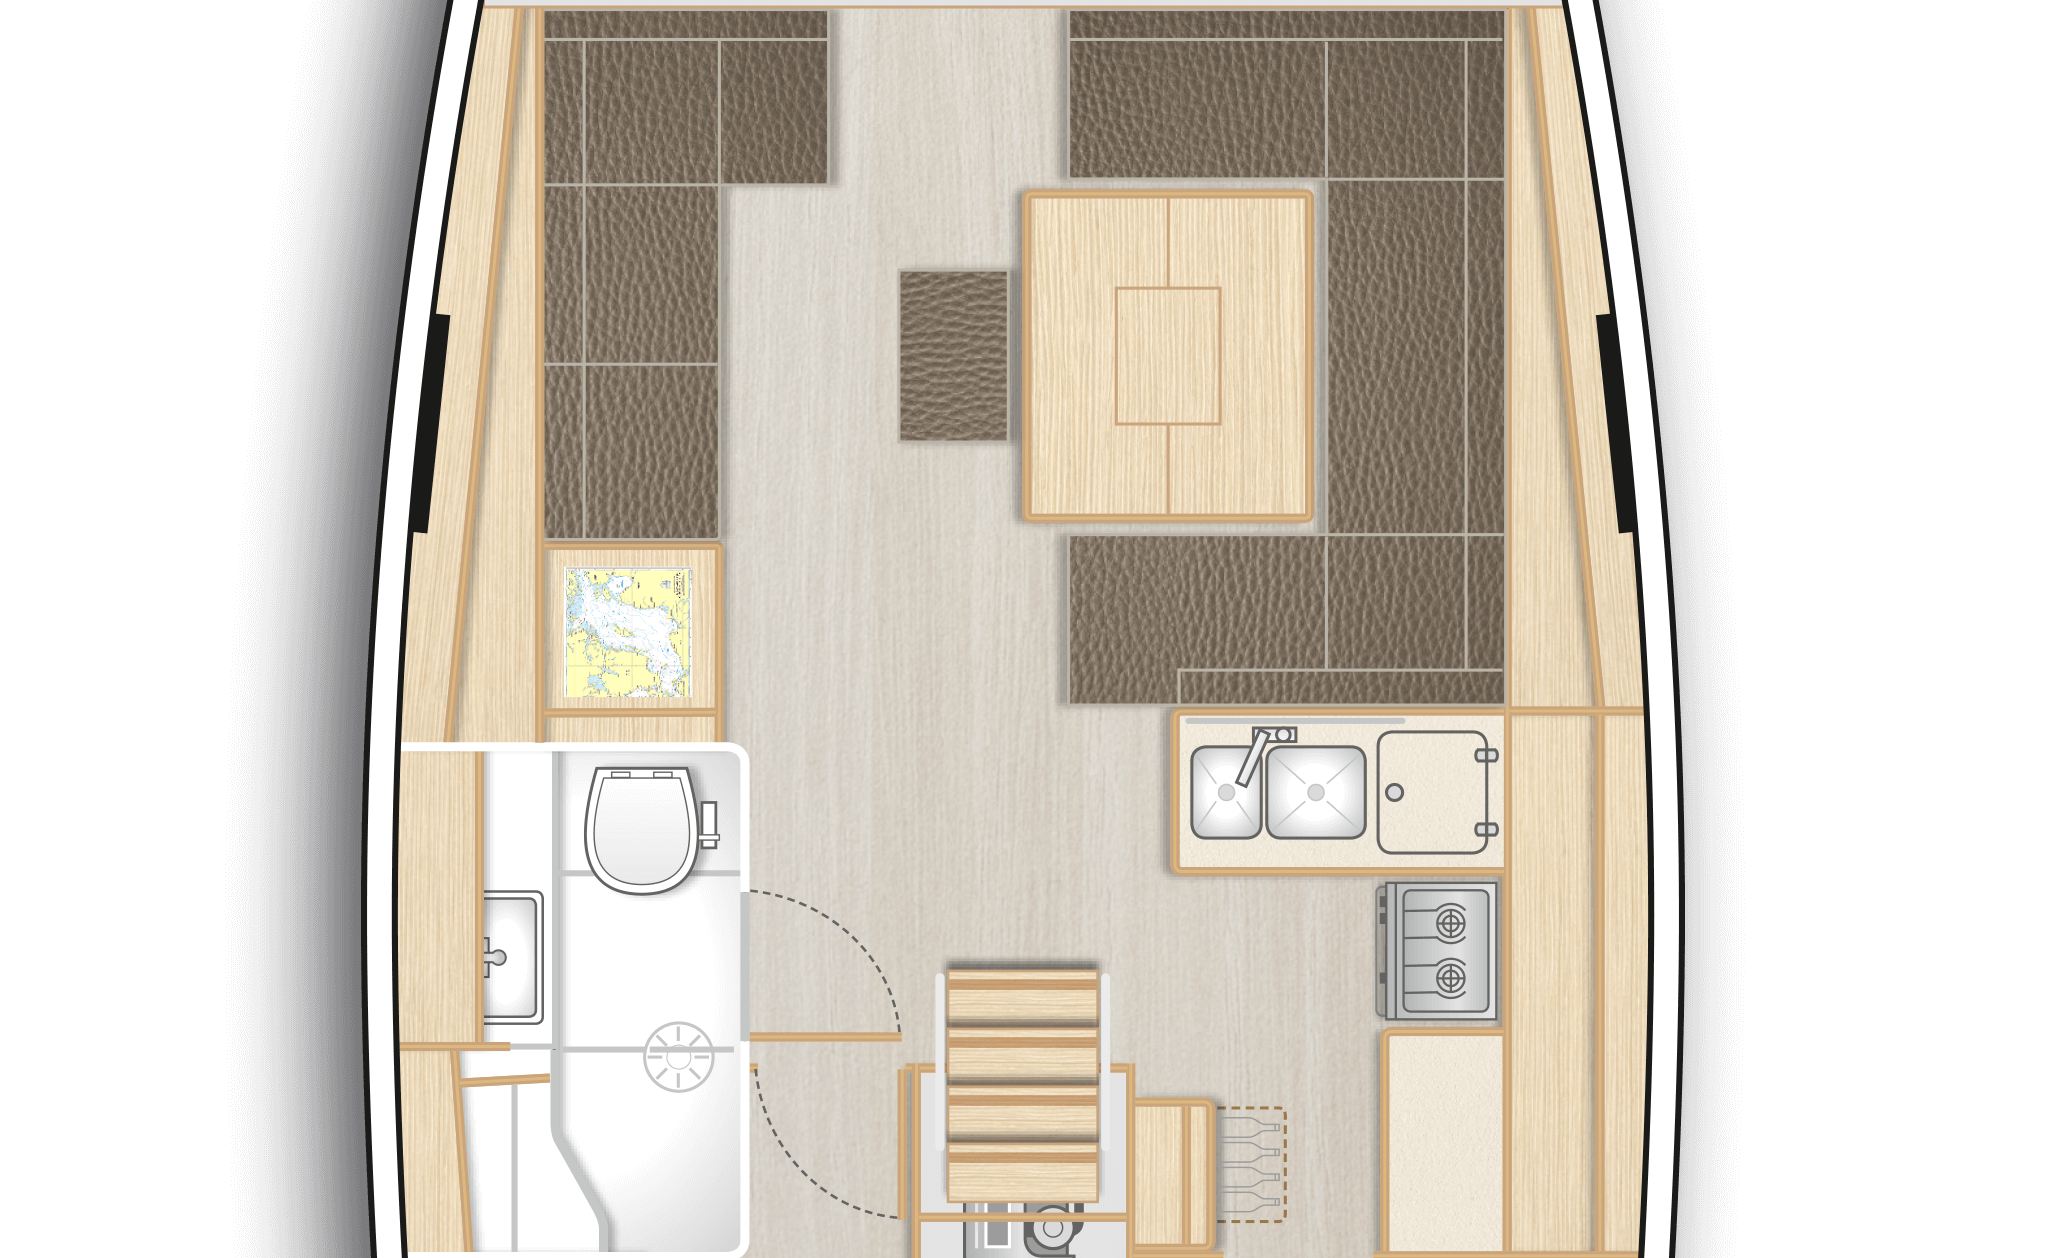 B1: Saloon with L-galley and dining area on stb, lounge area with chart table and head with separate shower on port